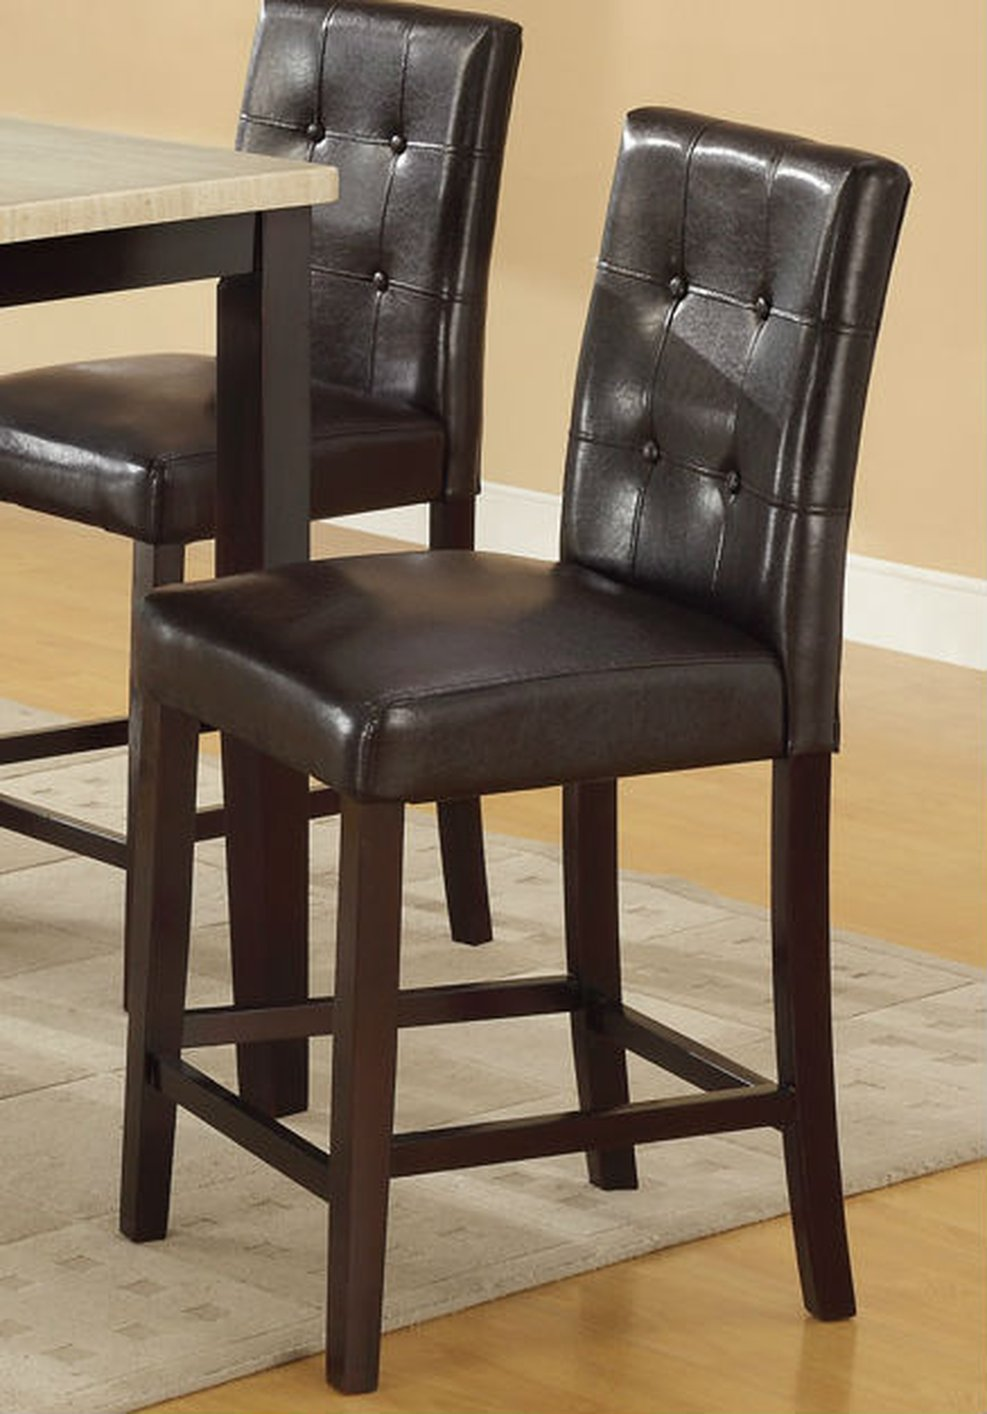 Brown Leather Dining Chair & Brown Leather Dining Chair - Steal-A-Sofa Furniture Outlet Los ...